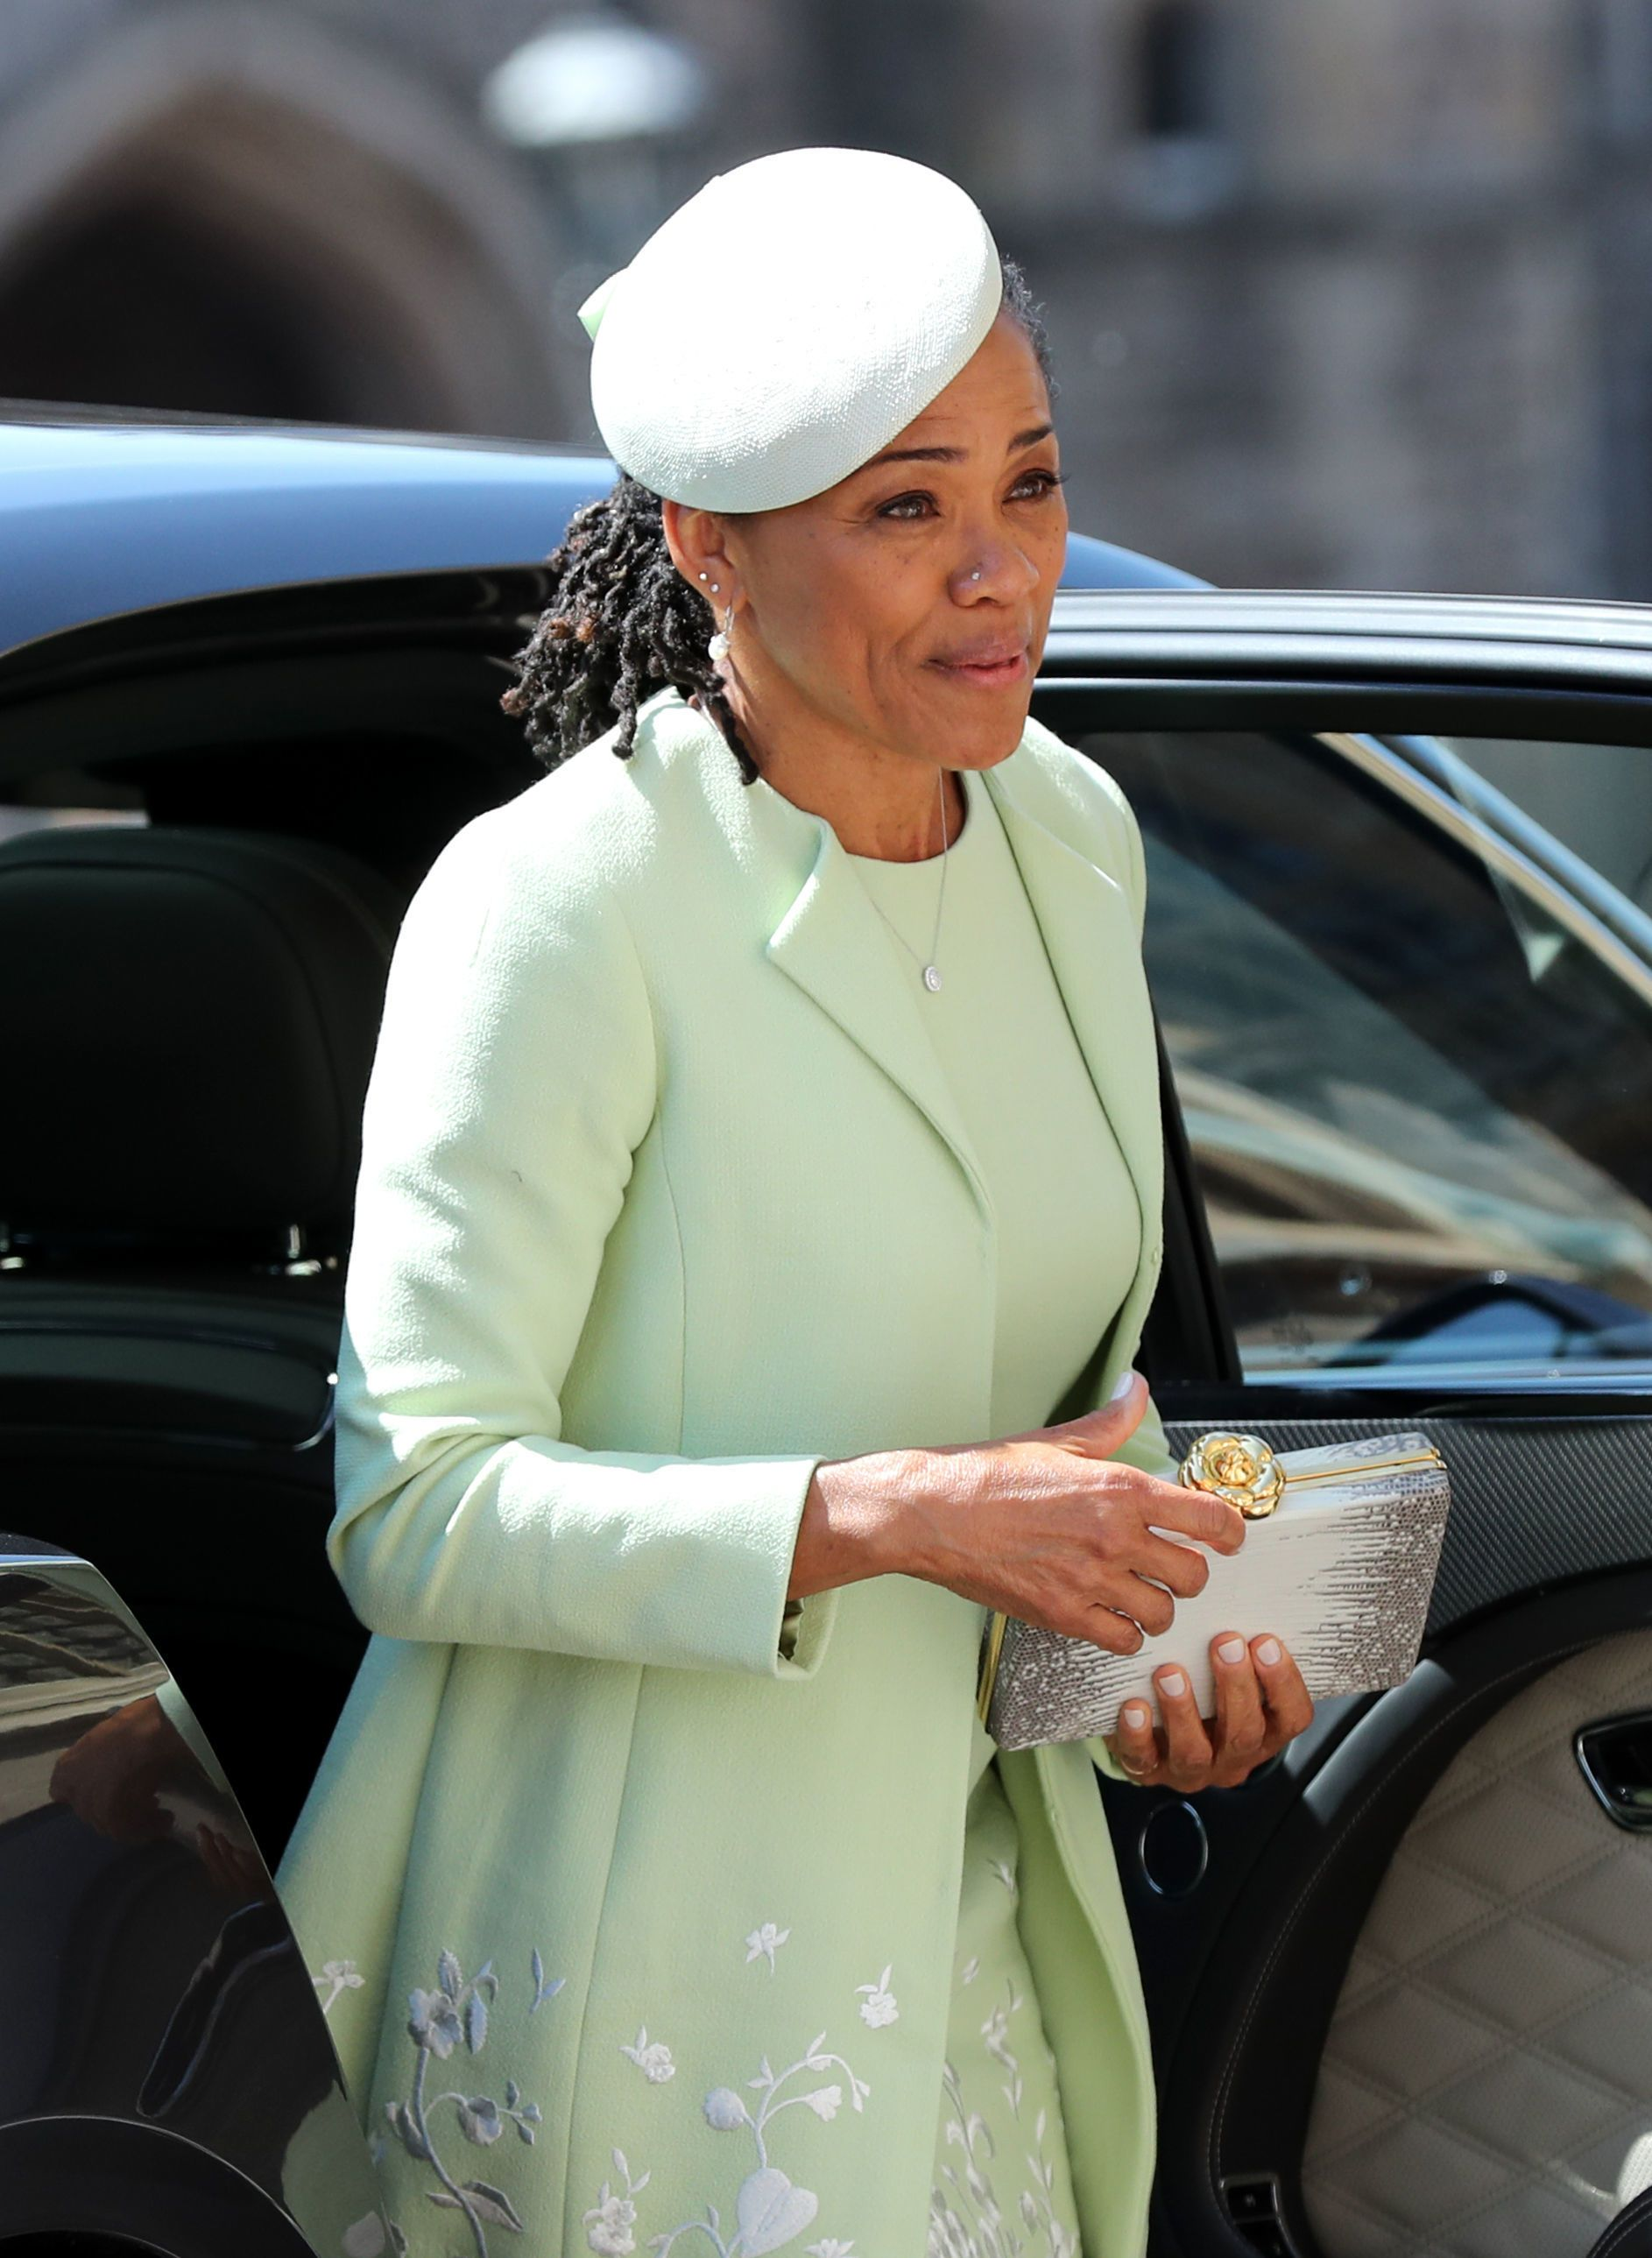 Doria Ragland arrives at St George's Chapel at Windsor Castle before the wedding of Prince Harry to Meghan Markle on May 19, 2018 | Getty Images